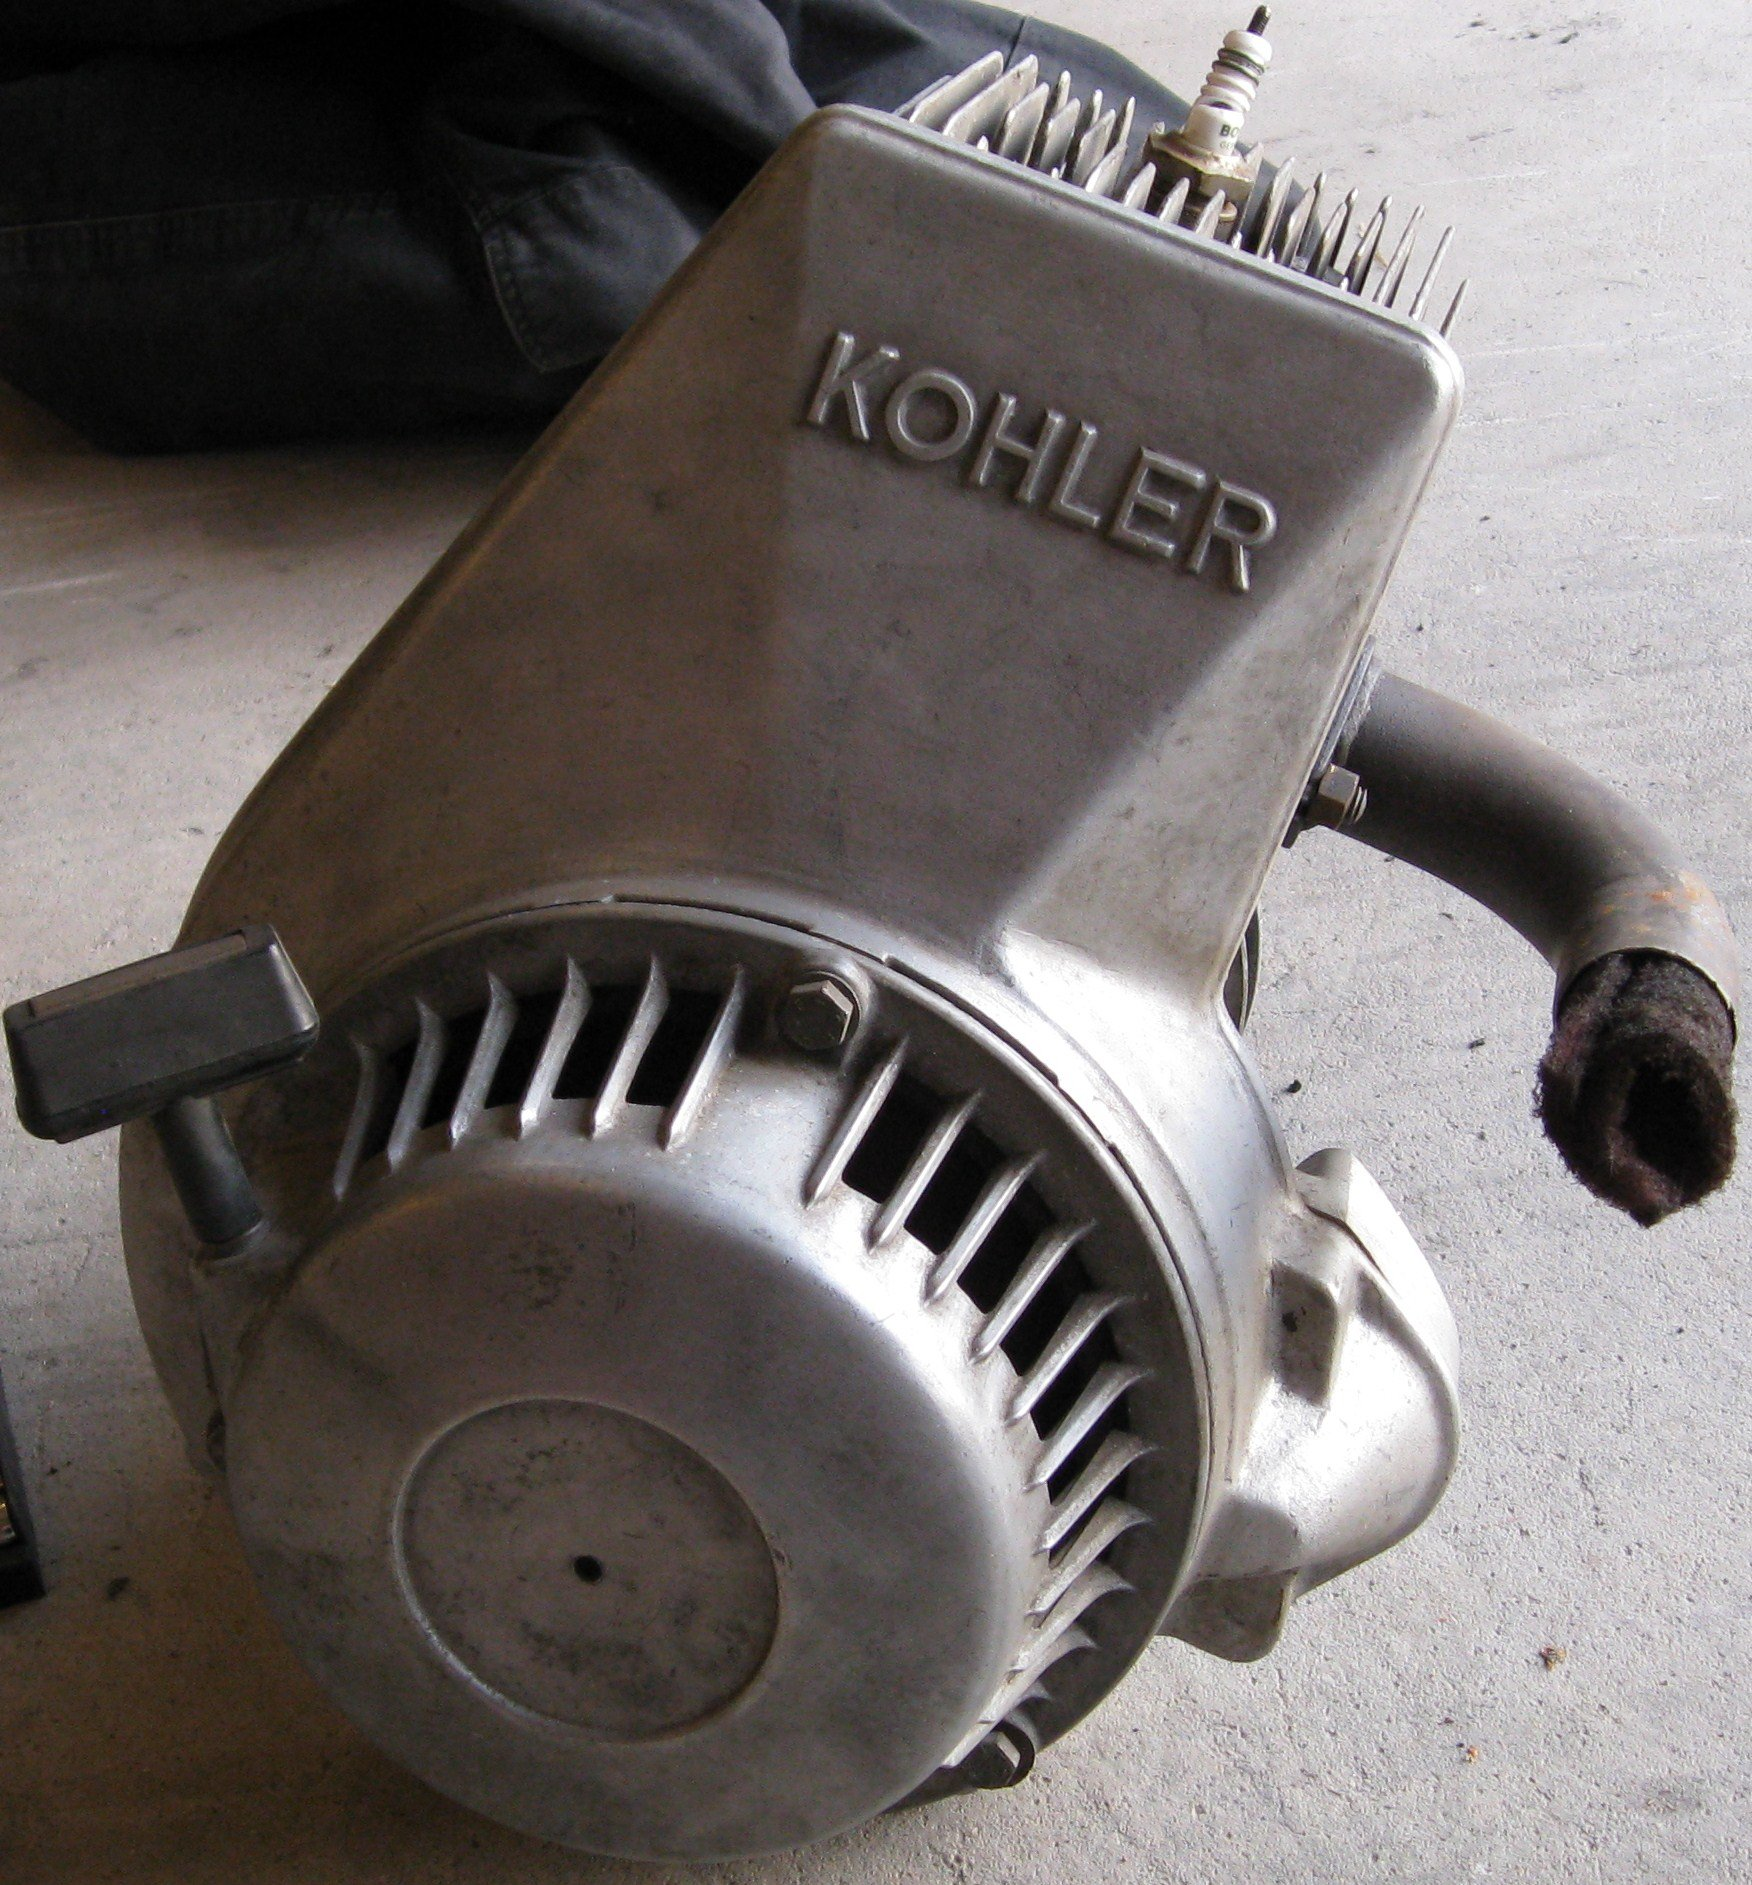 295 Kohler Wiring Diagram 25 Images 22 Hp 190407d1270162751 Engine What Do I Have 551 Small